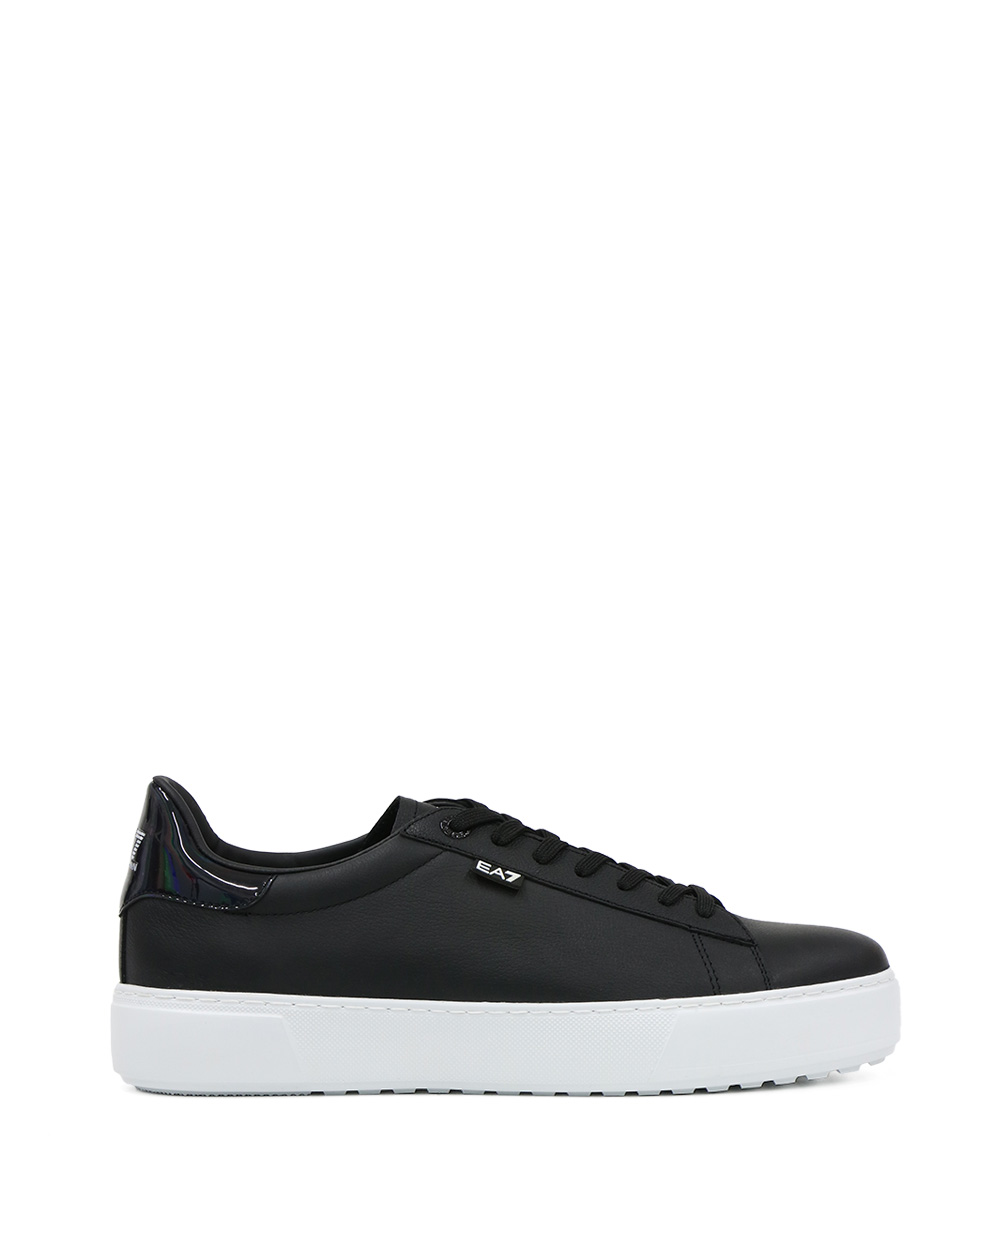 Classic Sole Sneakers